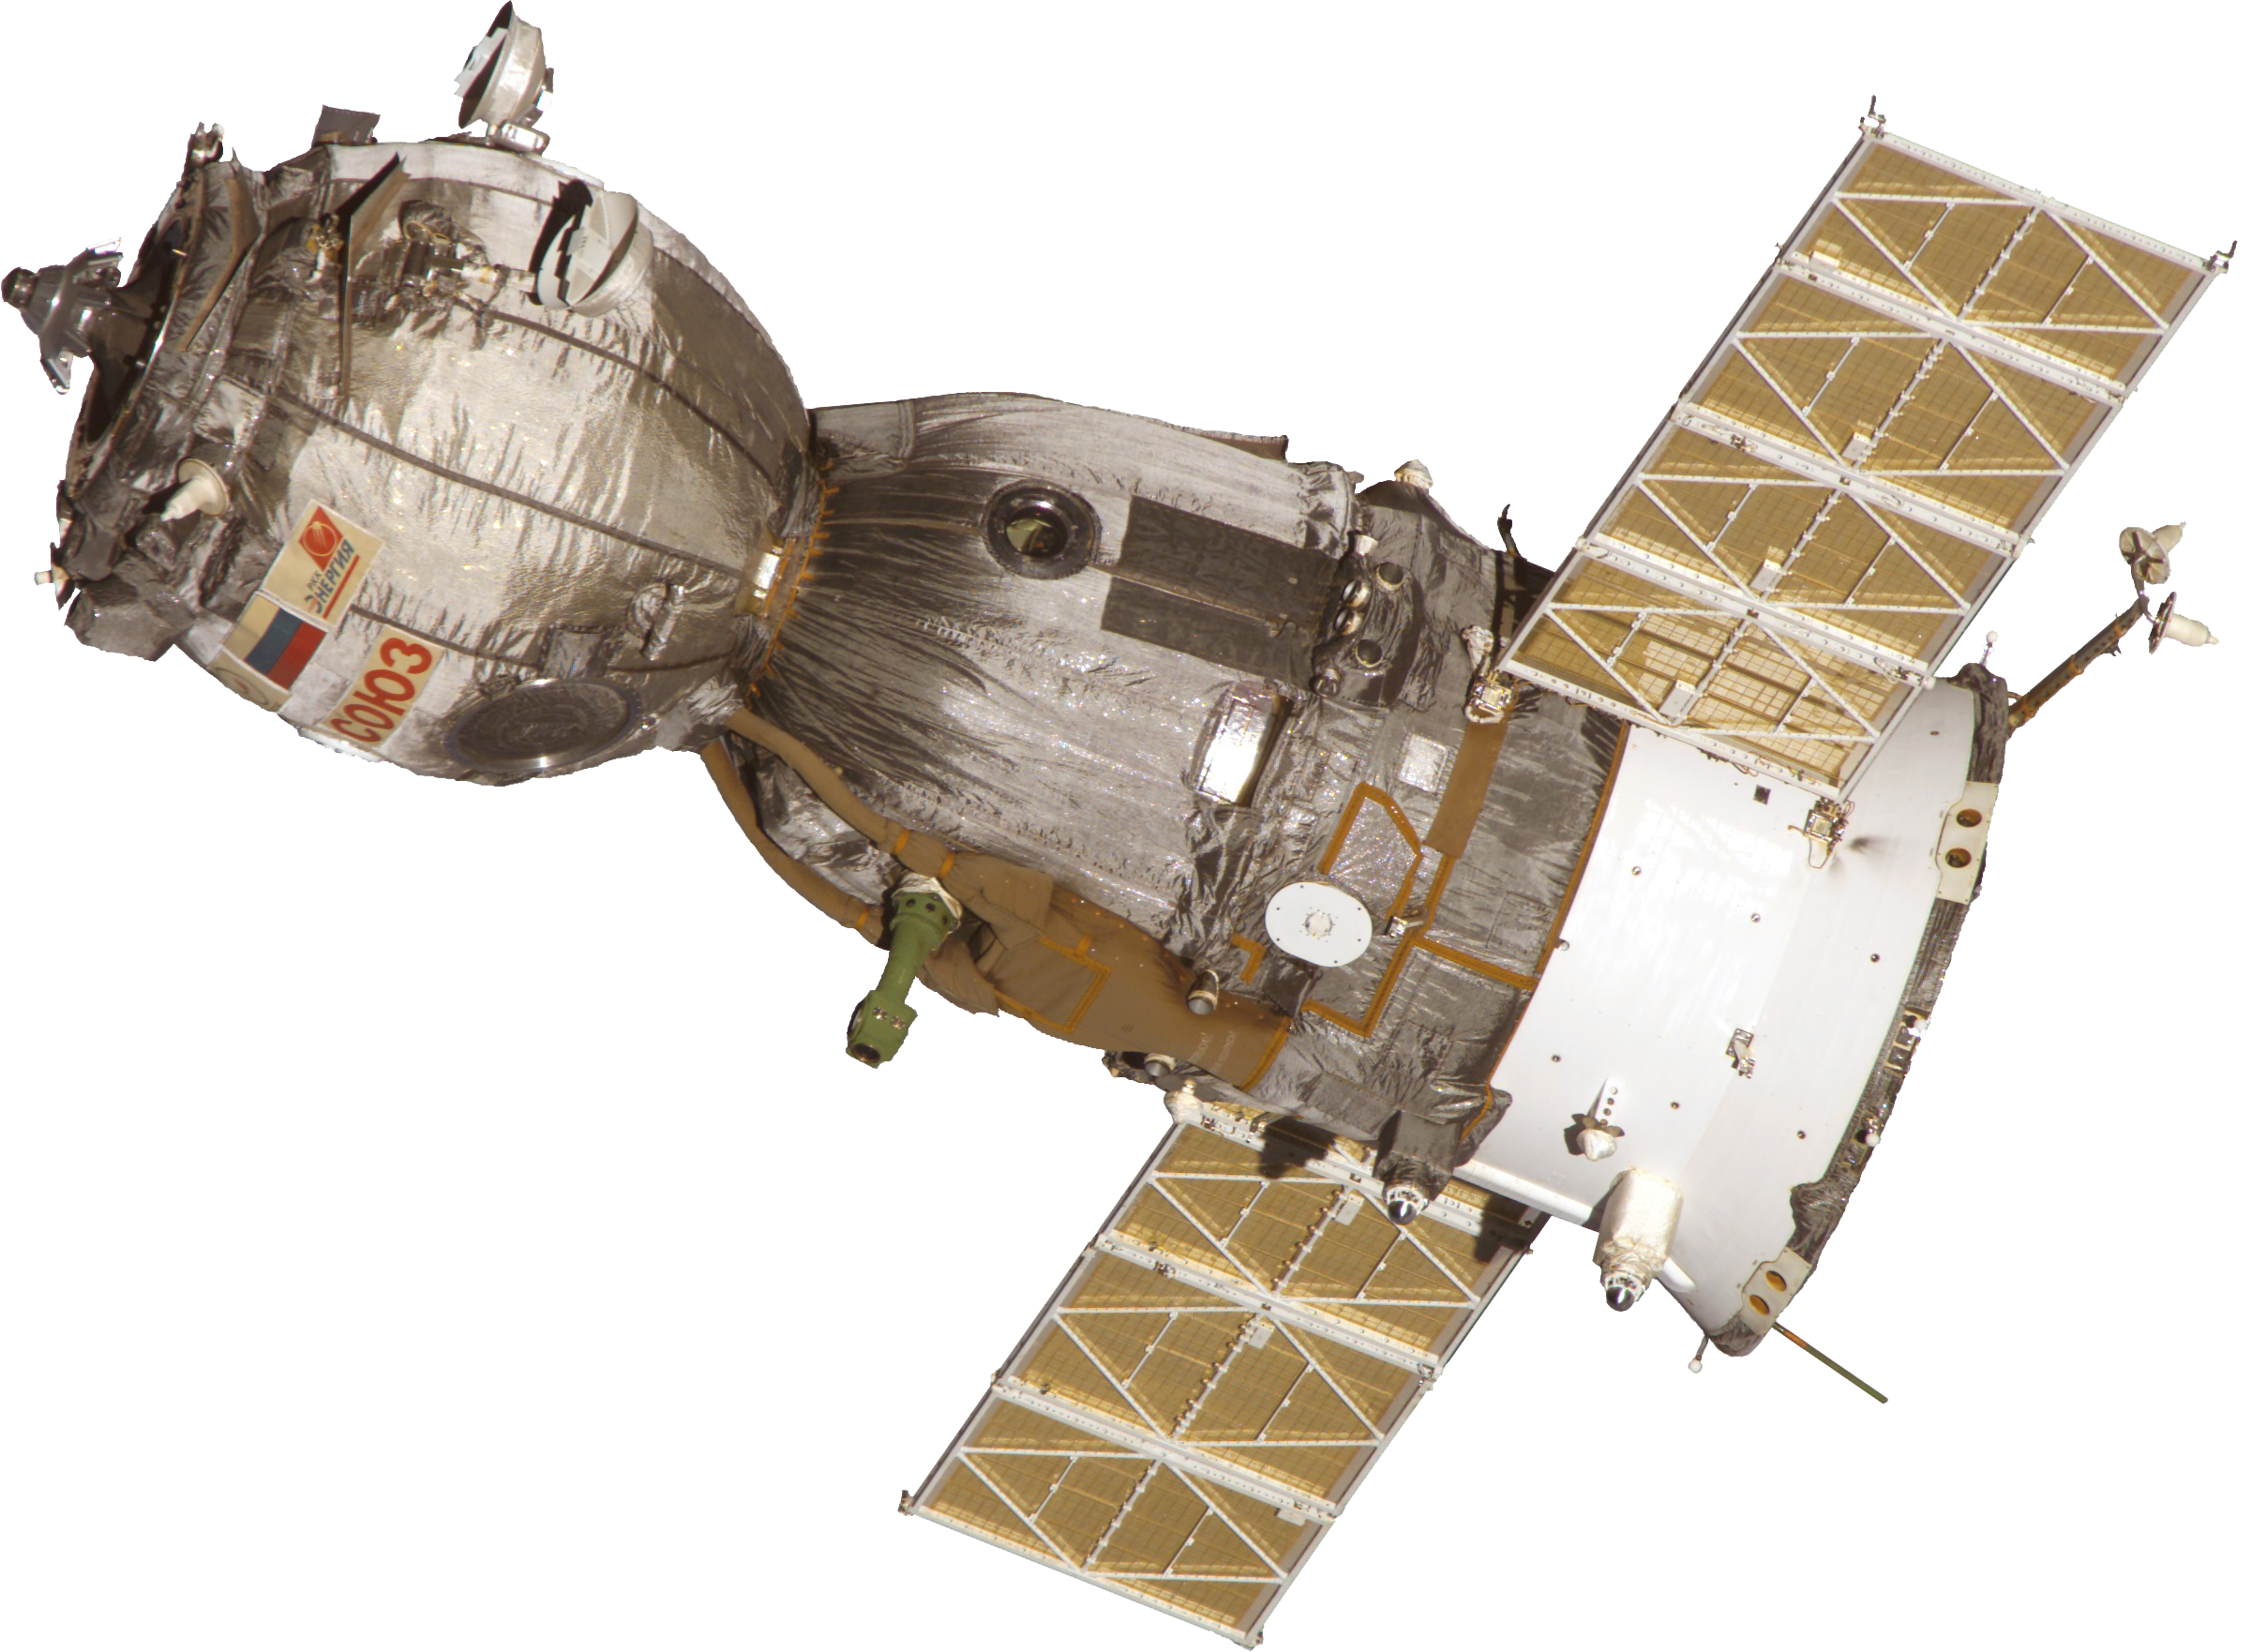 PNG Clipart Spacecraft image #40887